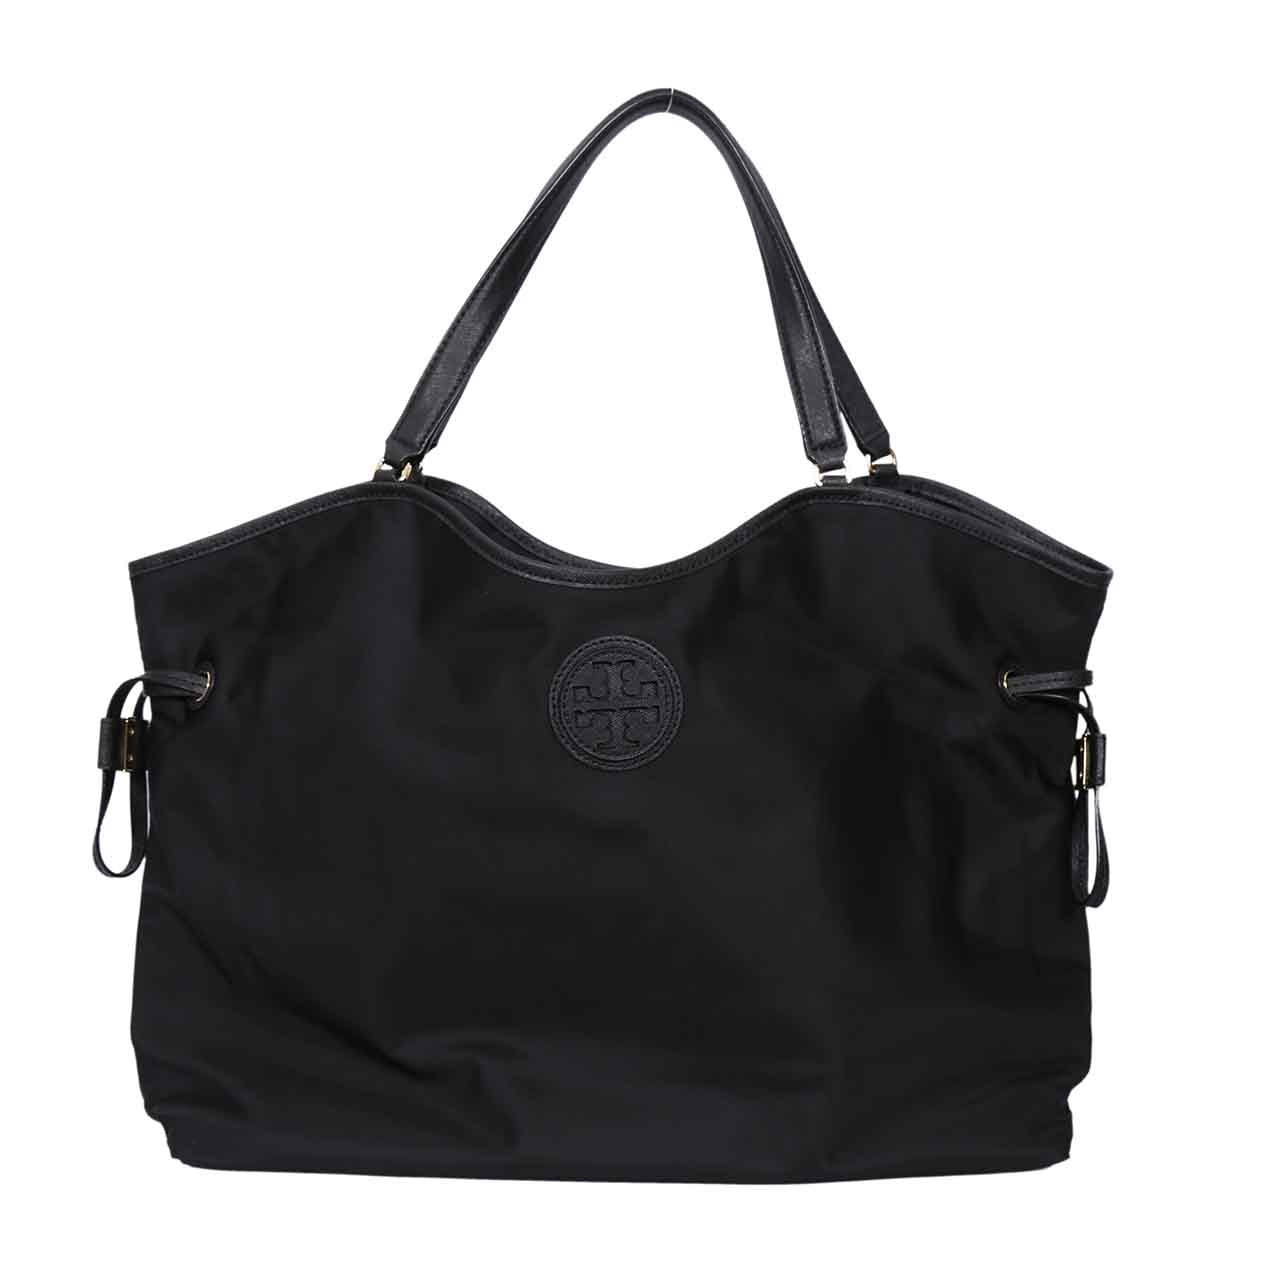 TORY BURCH NYLON SLOUCHY TOTE SHOULDER SHOPPER BAG